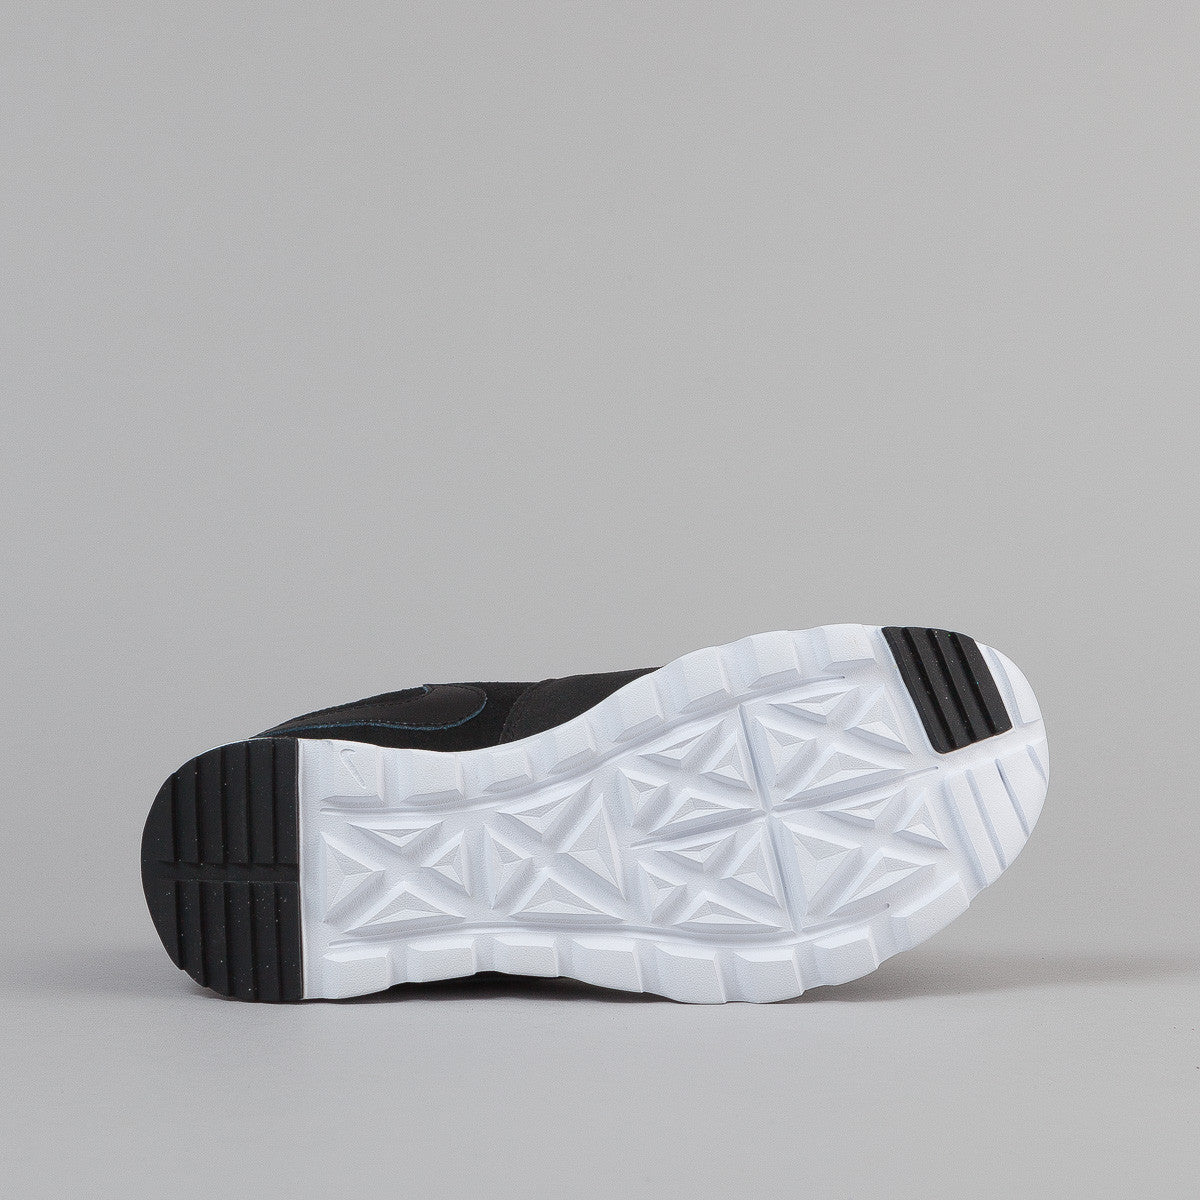 Nike SB Trainerendor L Shoes - Black / Black / White